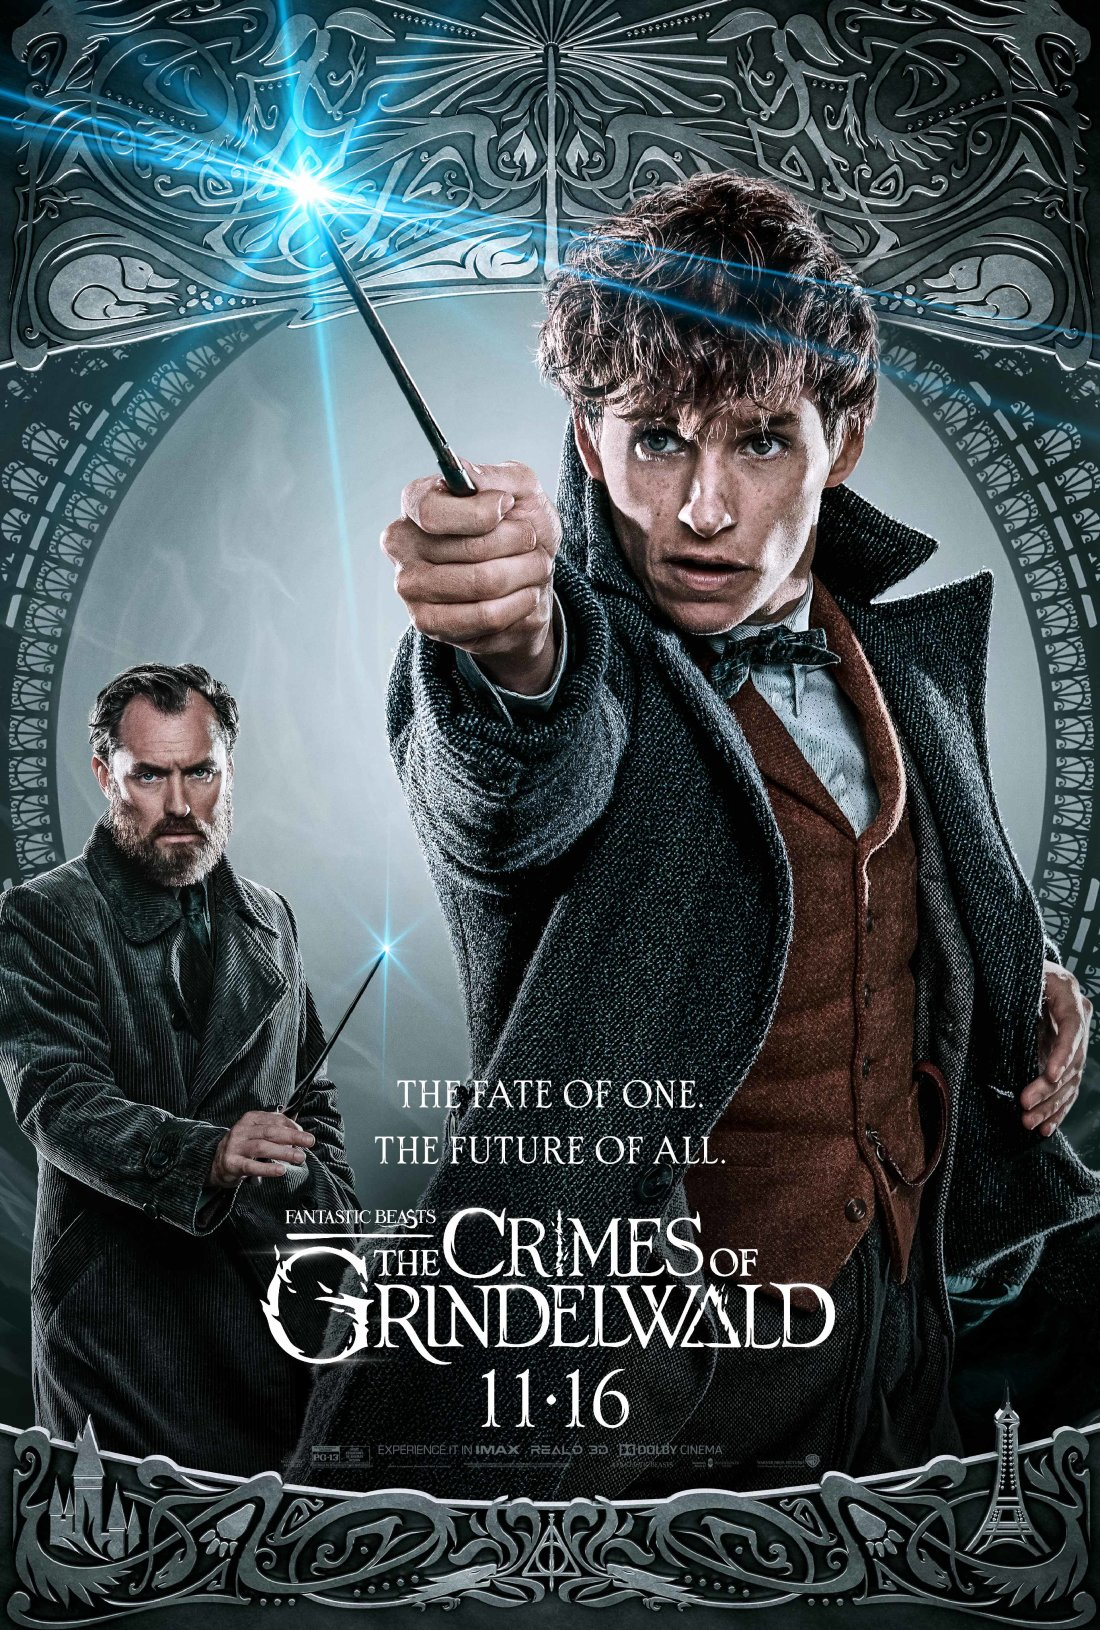 Fantastic Beasts: The Crimes of Grindelwald (2018) Poster - Dumbledore and Newt